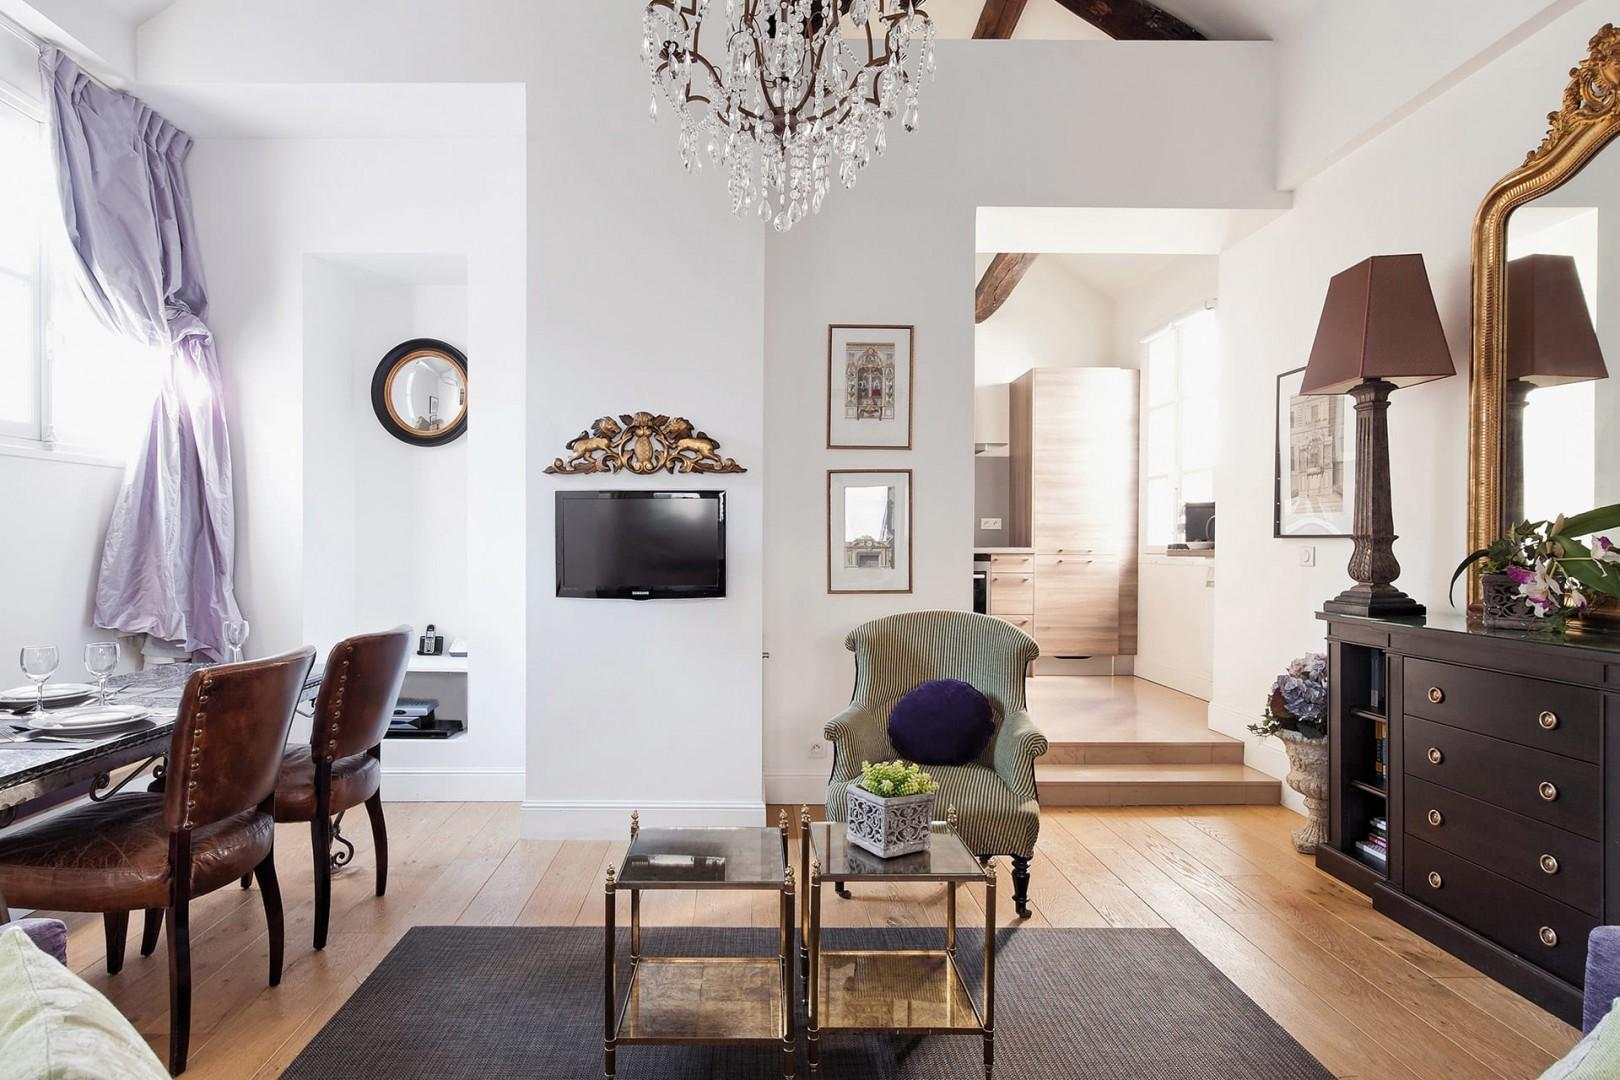 The apartment offers a peaceful and relaxing stay right in the center of Paris.